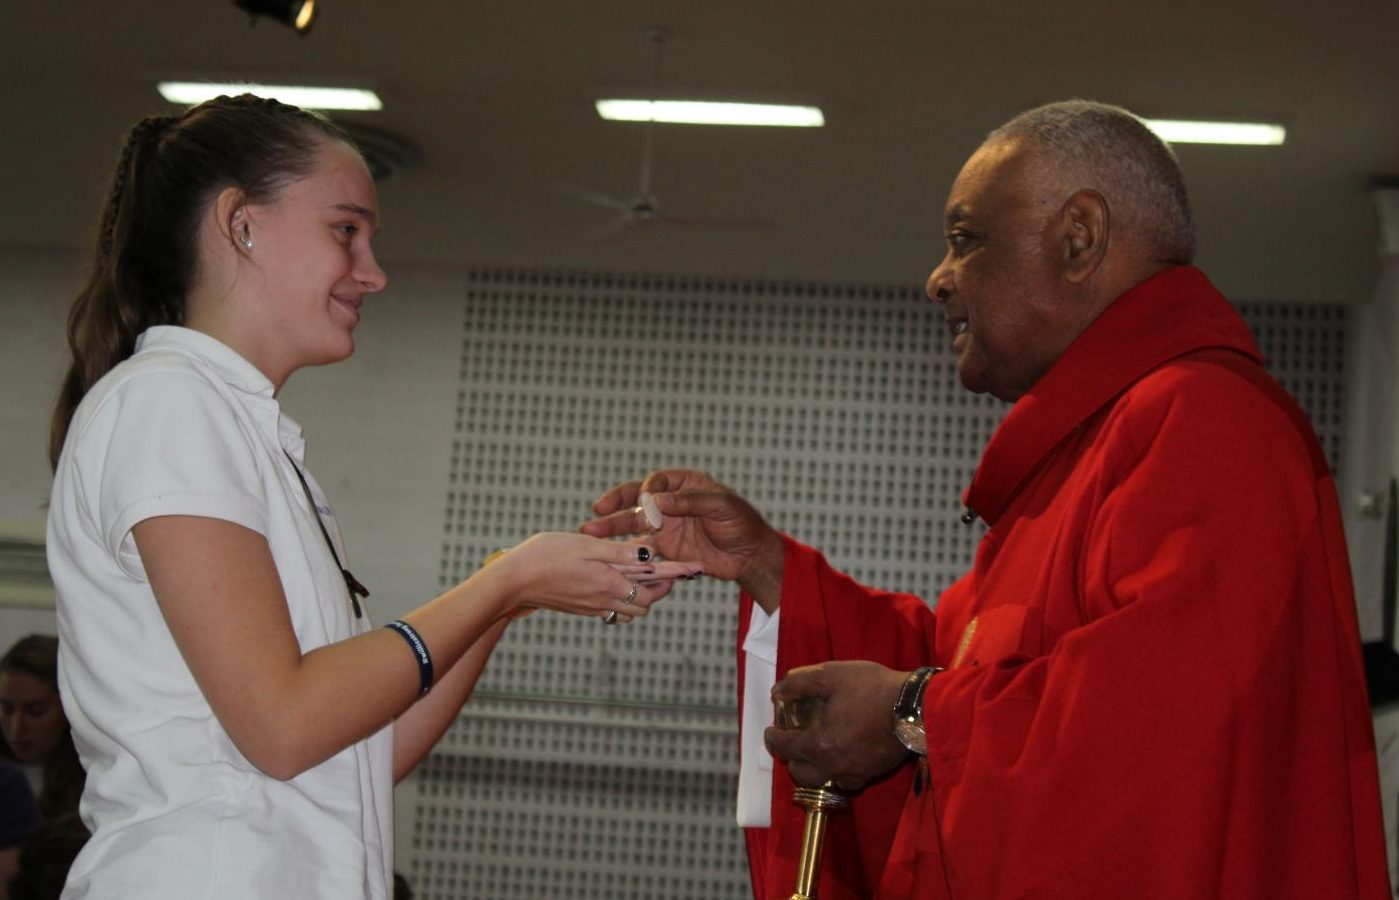 LOTA Molly Kueter '21 receiving the Eucharist from Bishop Gregory